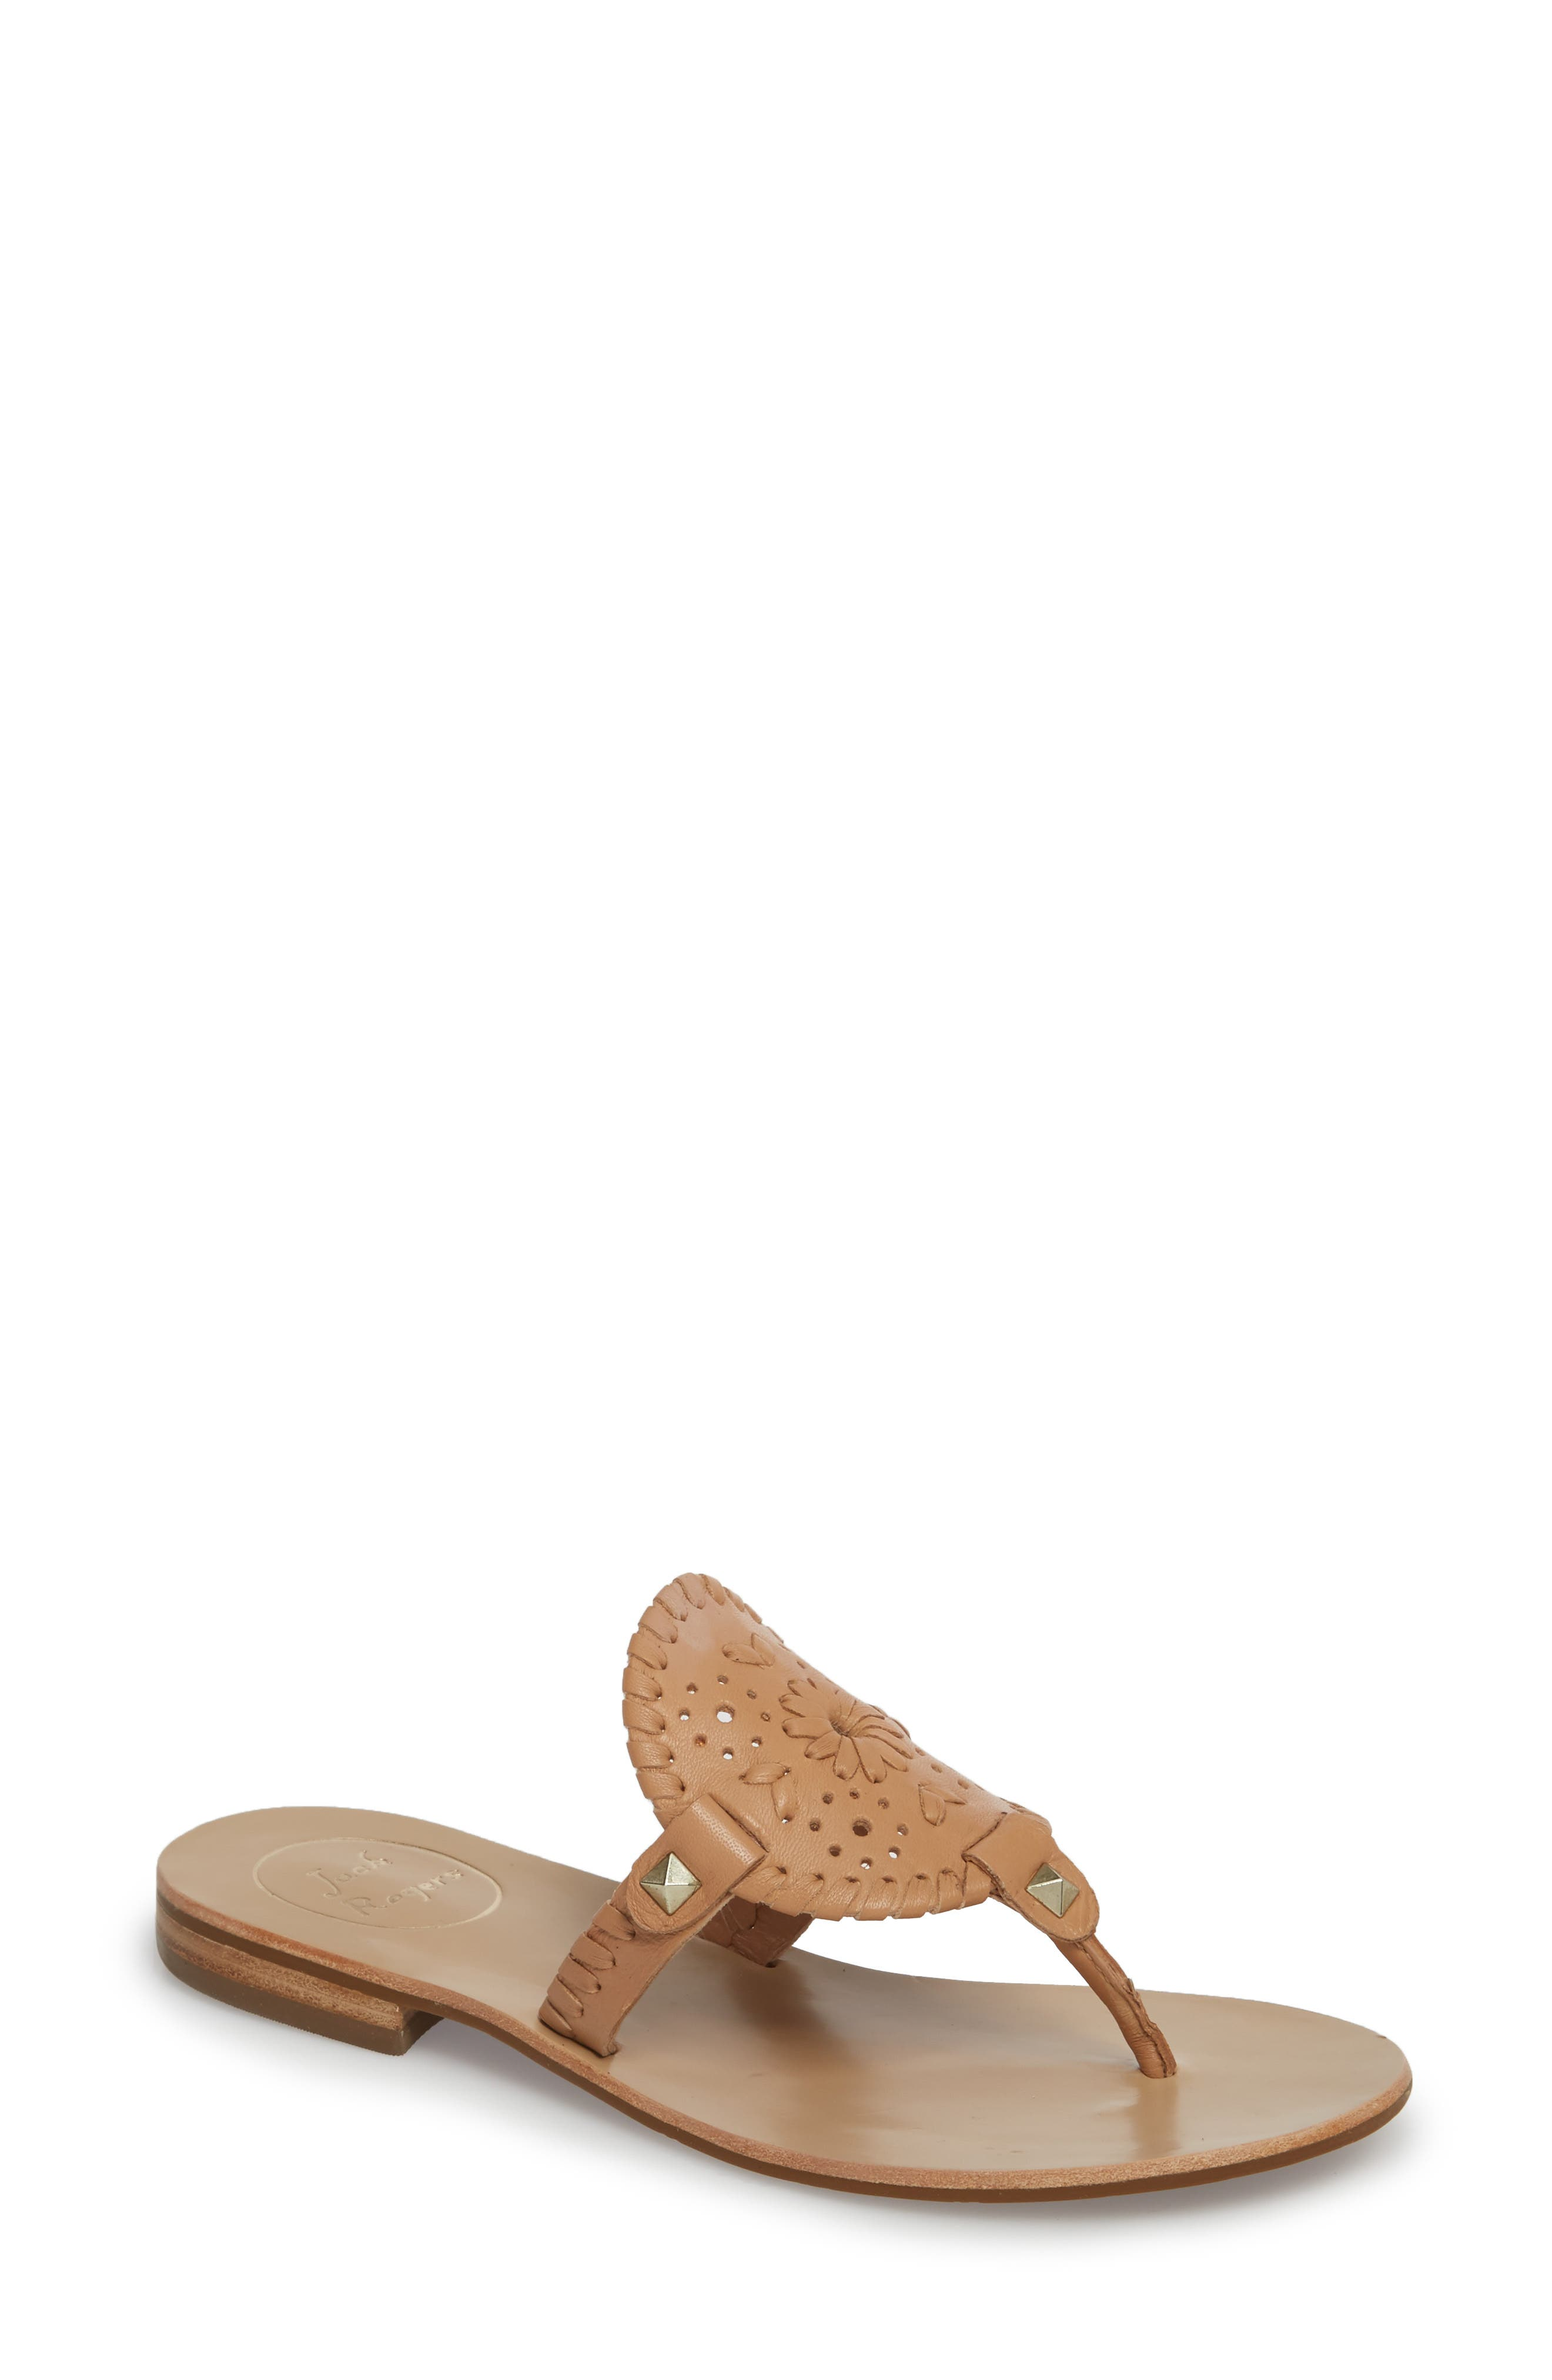 'Georgica' Sandals,                         Main,                         color, Buff Leather